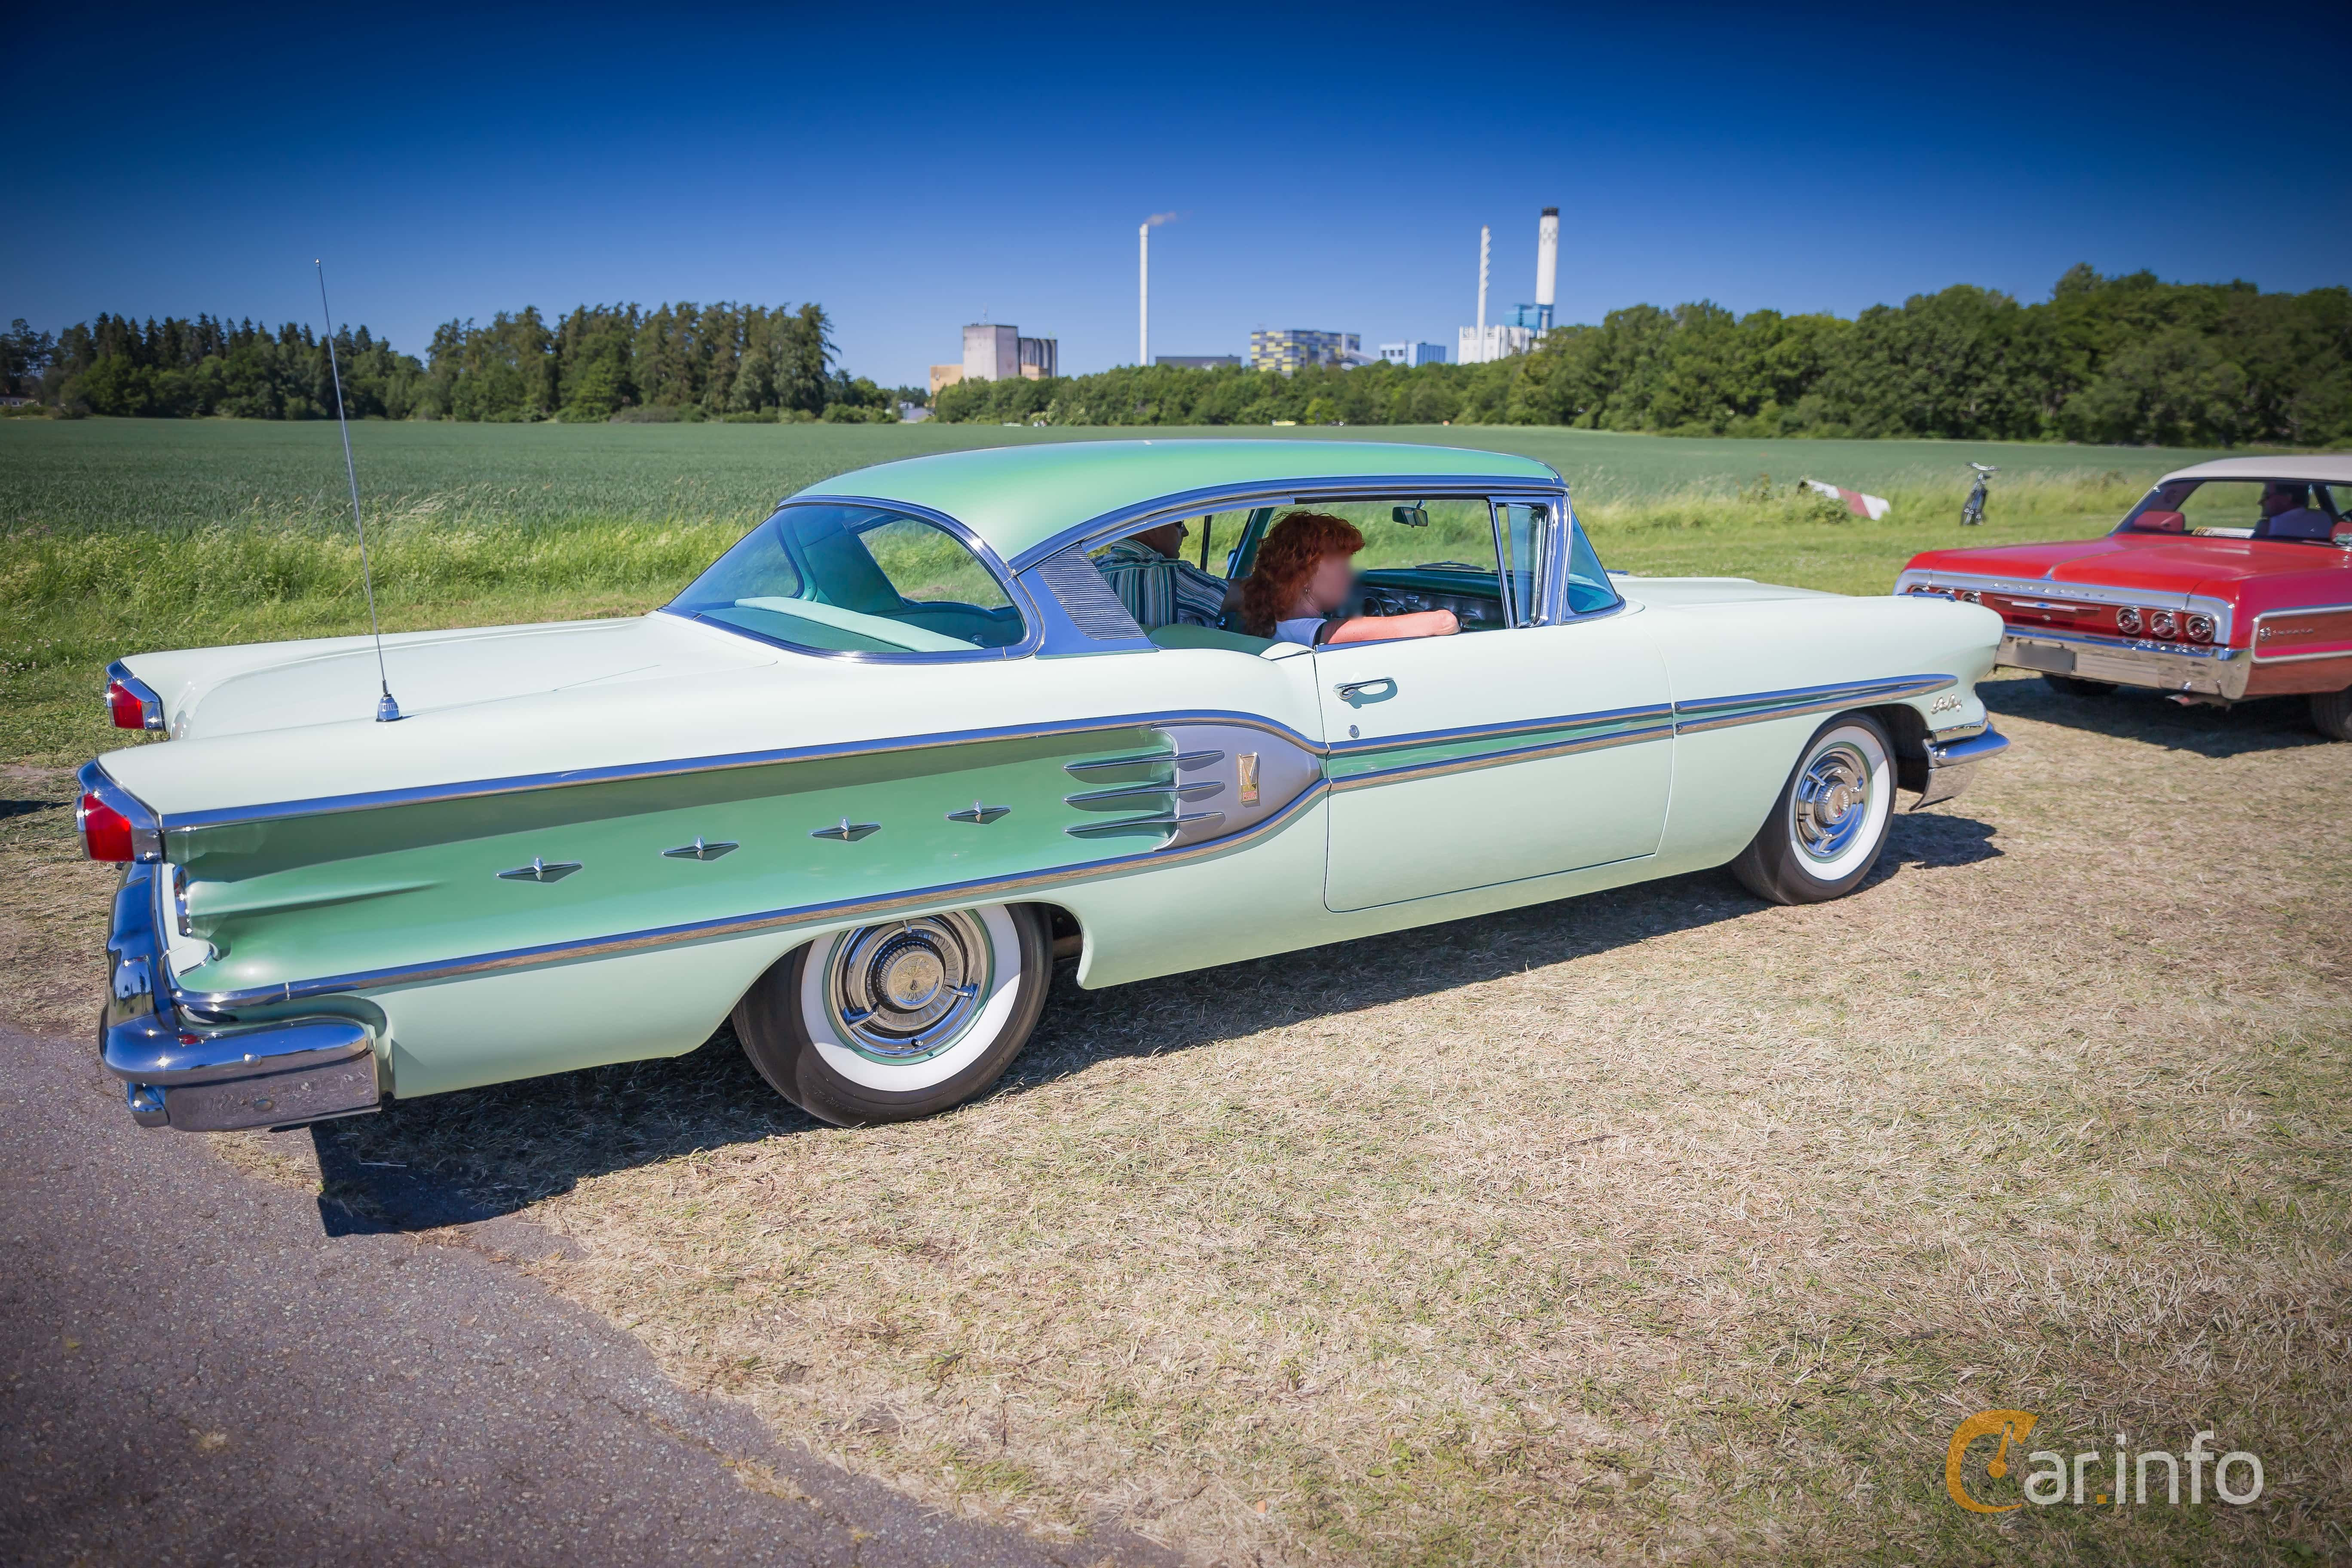 3 Images Of Pontiac Star Chief Catalina Coup 61 V8 Hydra Matic 1950 289hp 1958 By Marcusliedholm